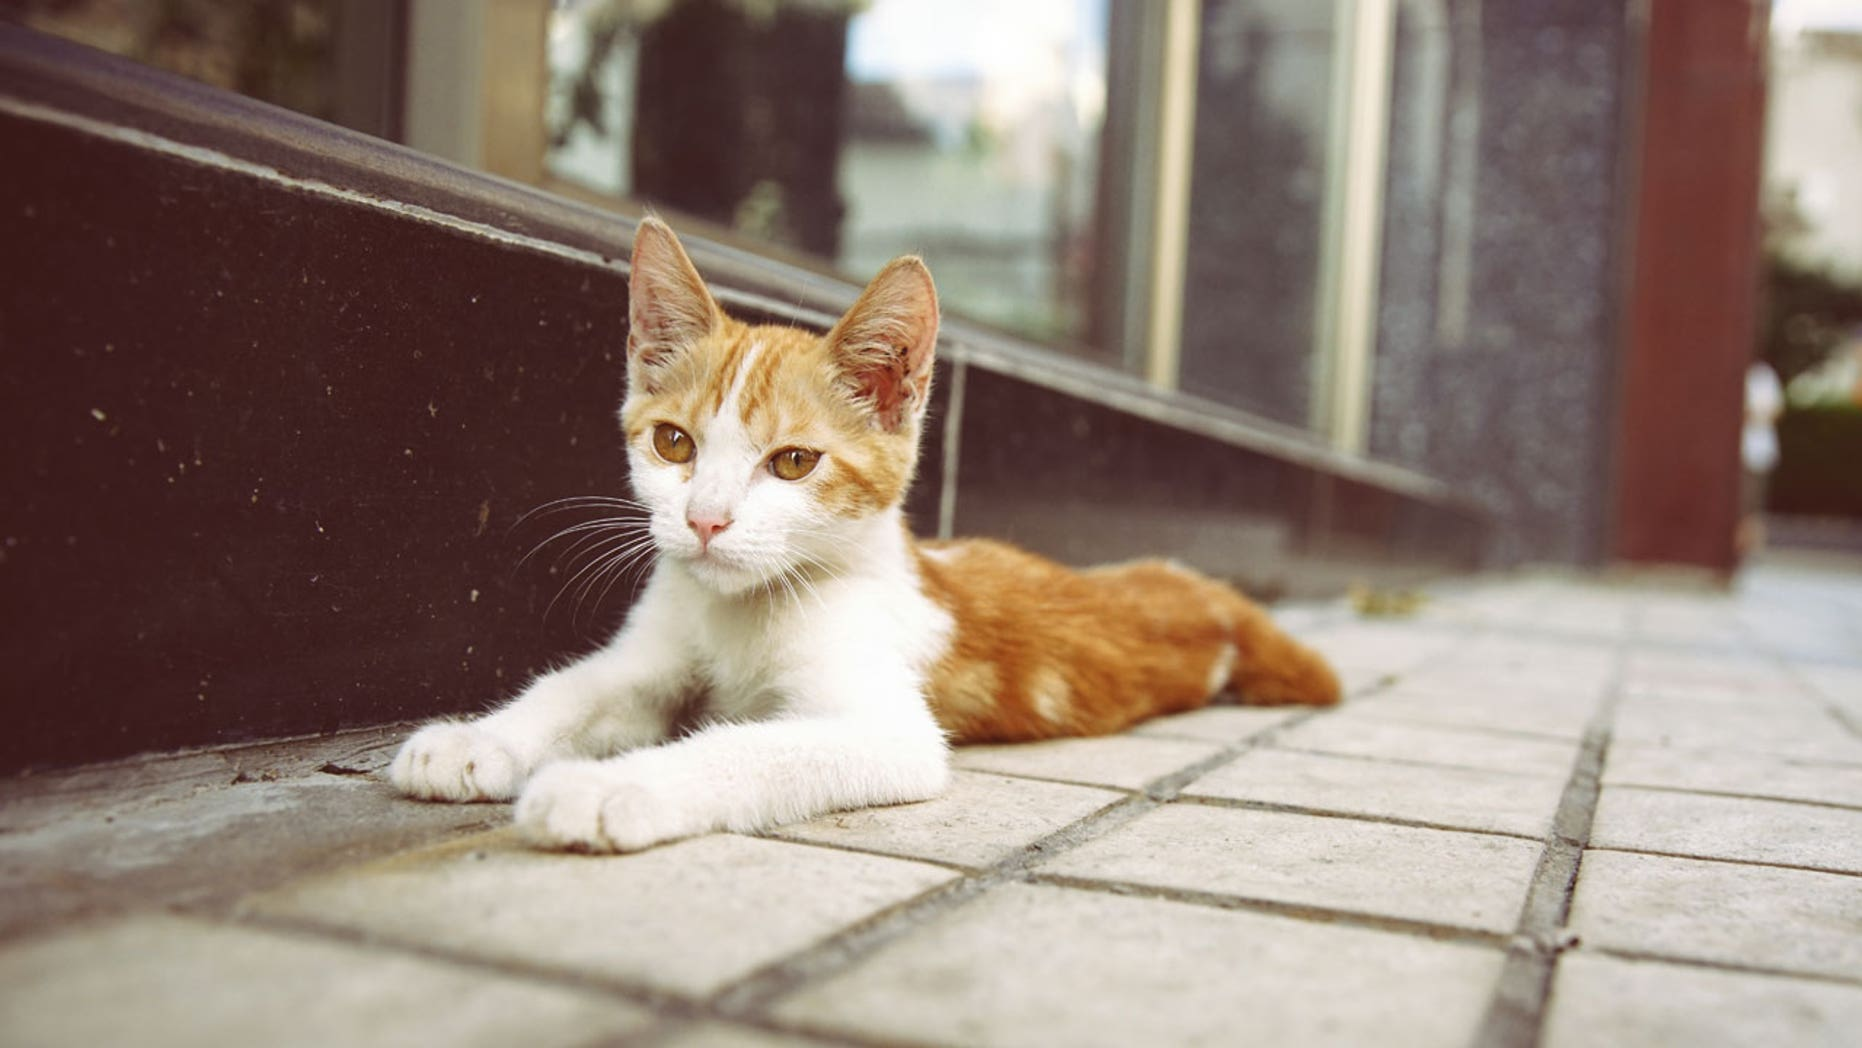 A man in China rounded up hundreds of stray and domesticated cats to sell to restaurants.